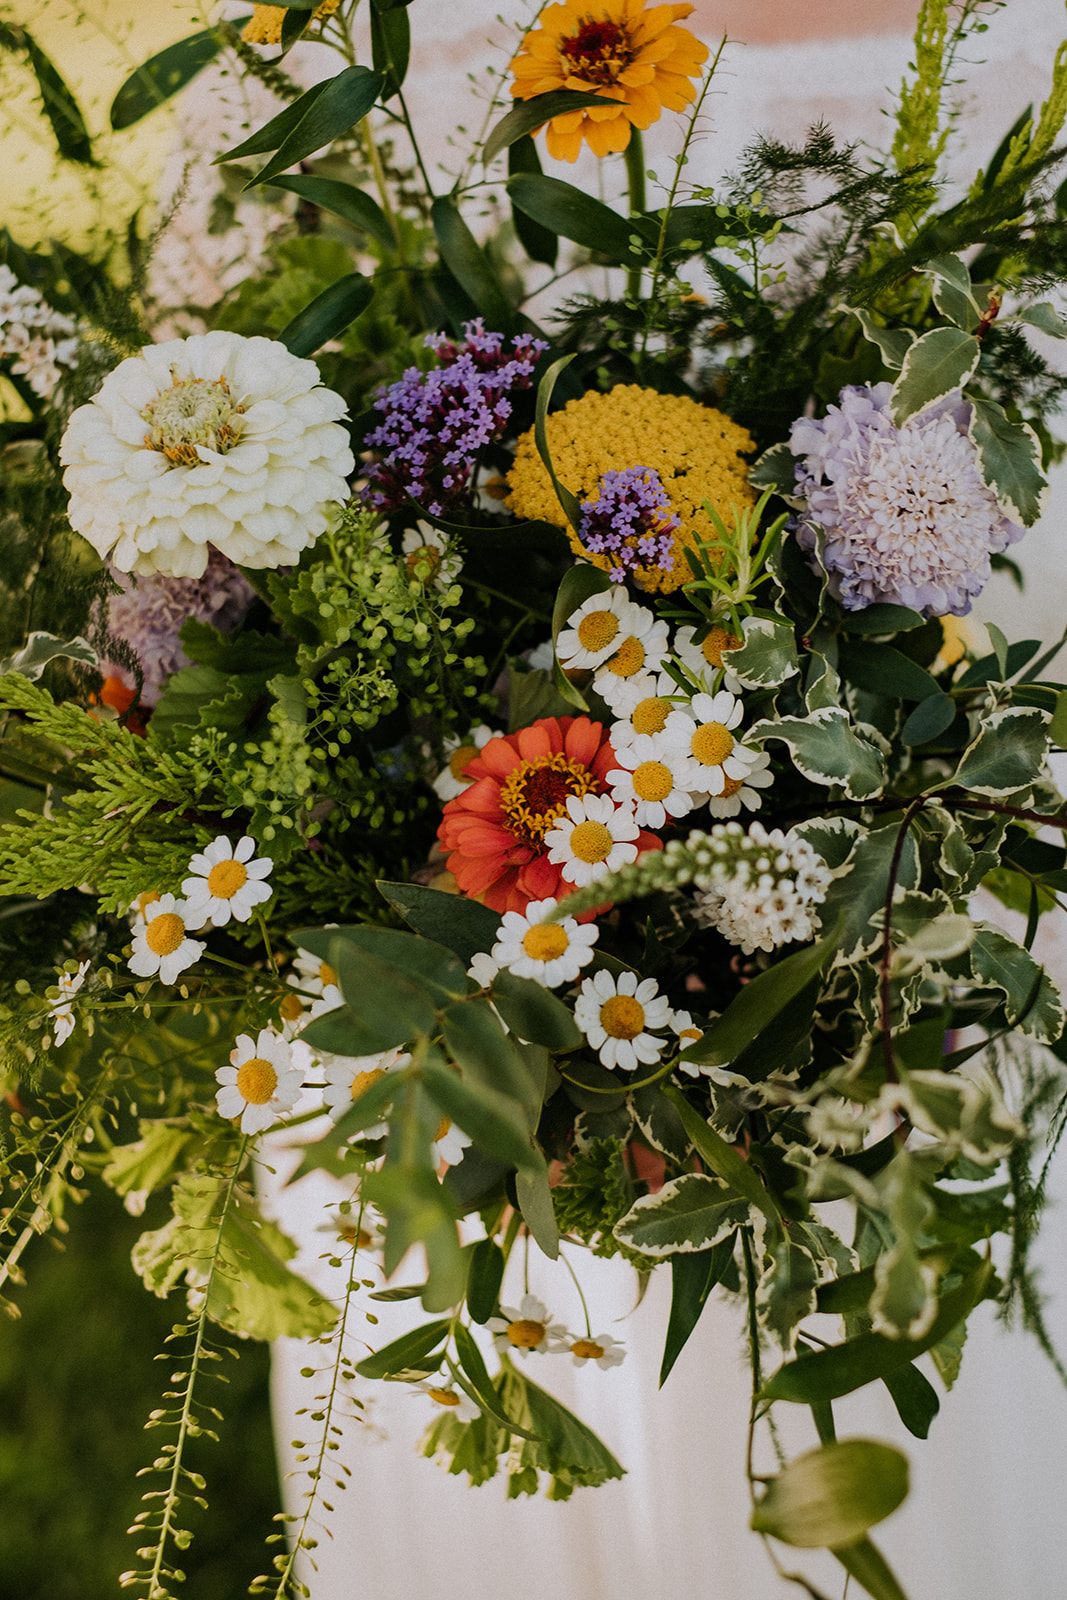 summer flowers bouquet - cattows farm wedding with sami tipi